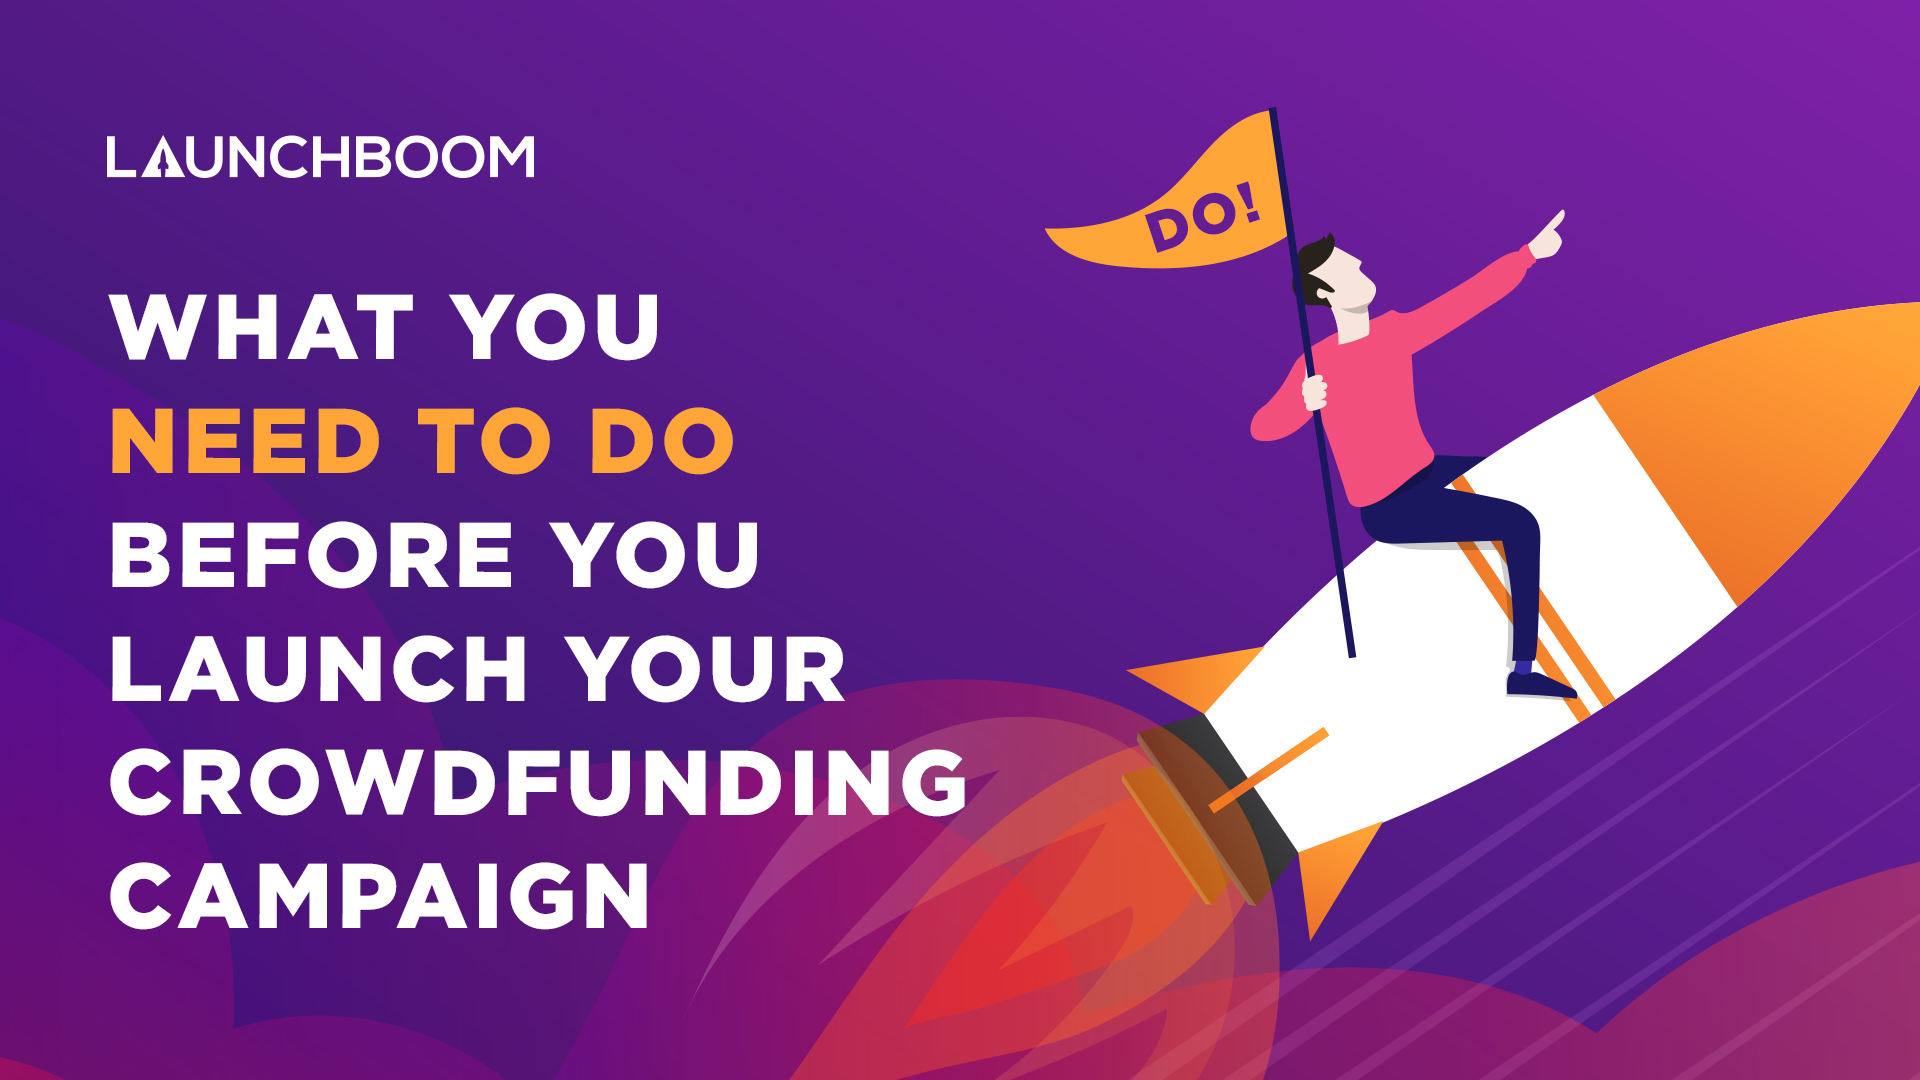 What you need to do before launching a crowdfunding campaign